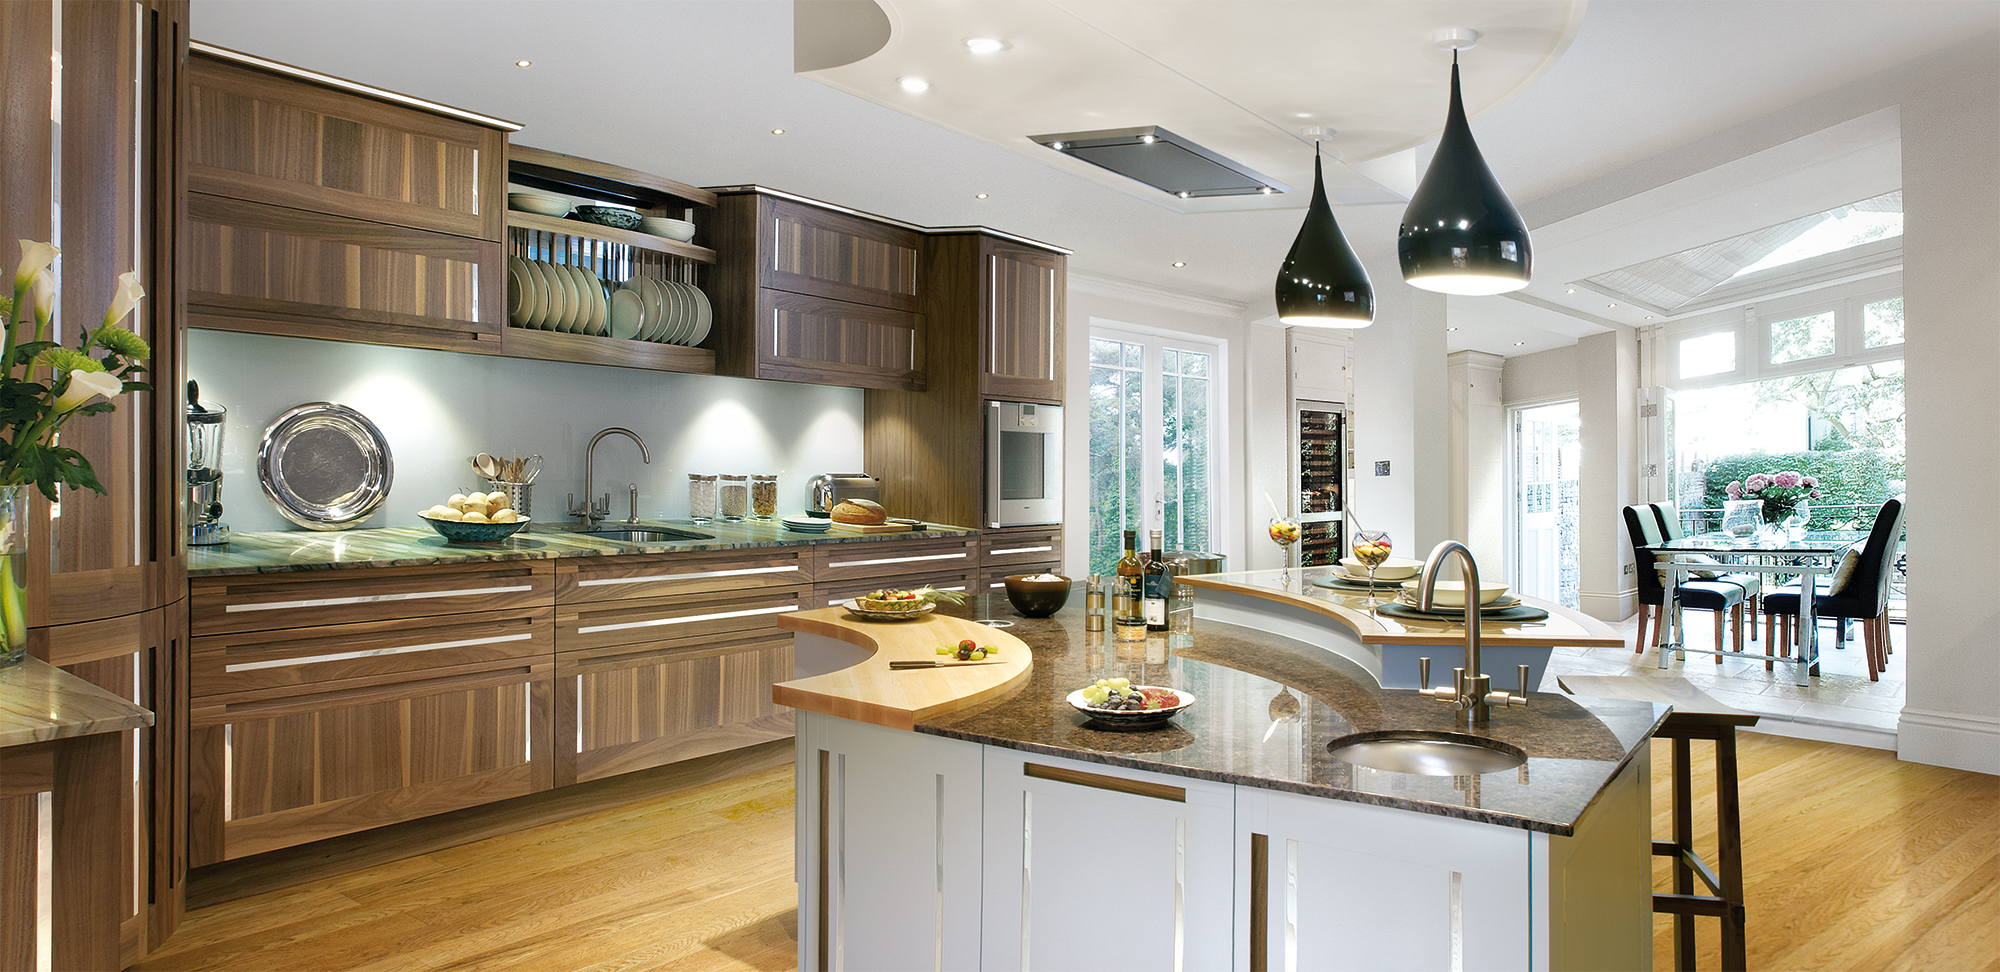 Mark wilkinson furniture collection newlyn kitchen 6